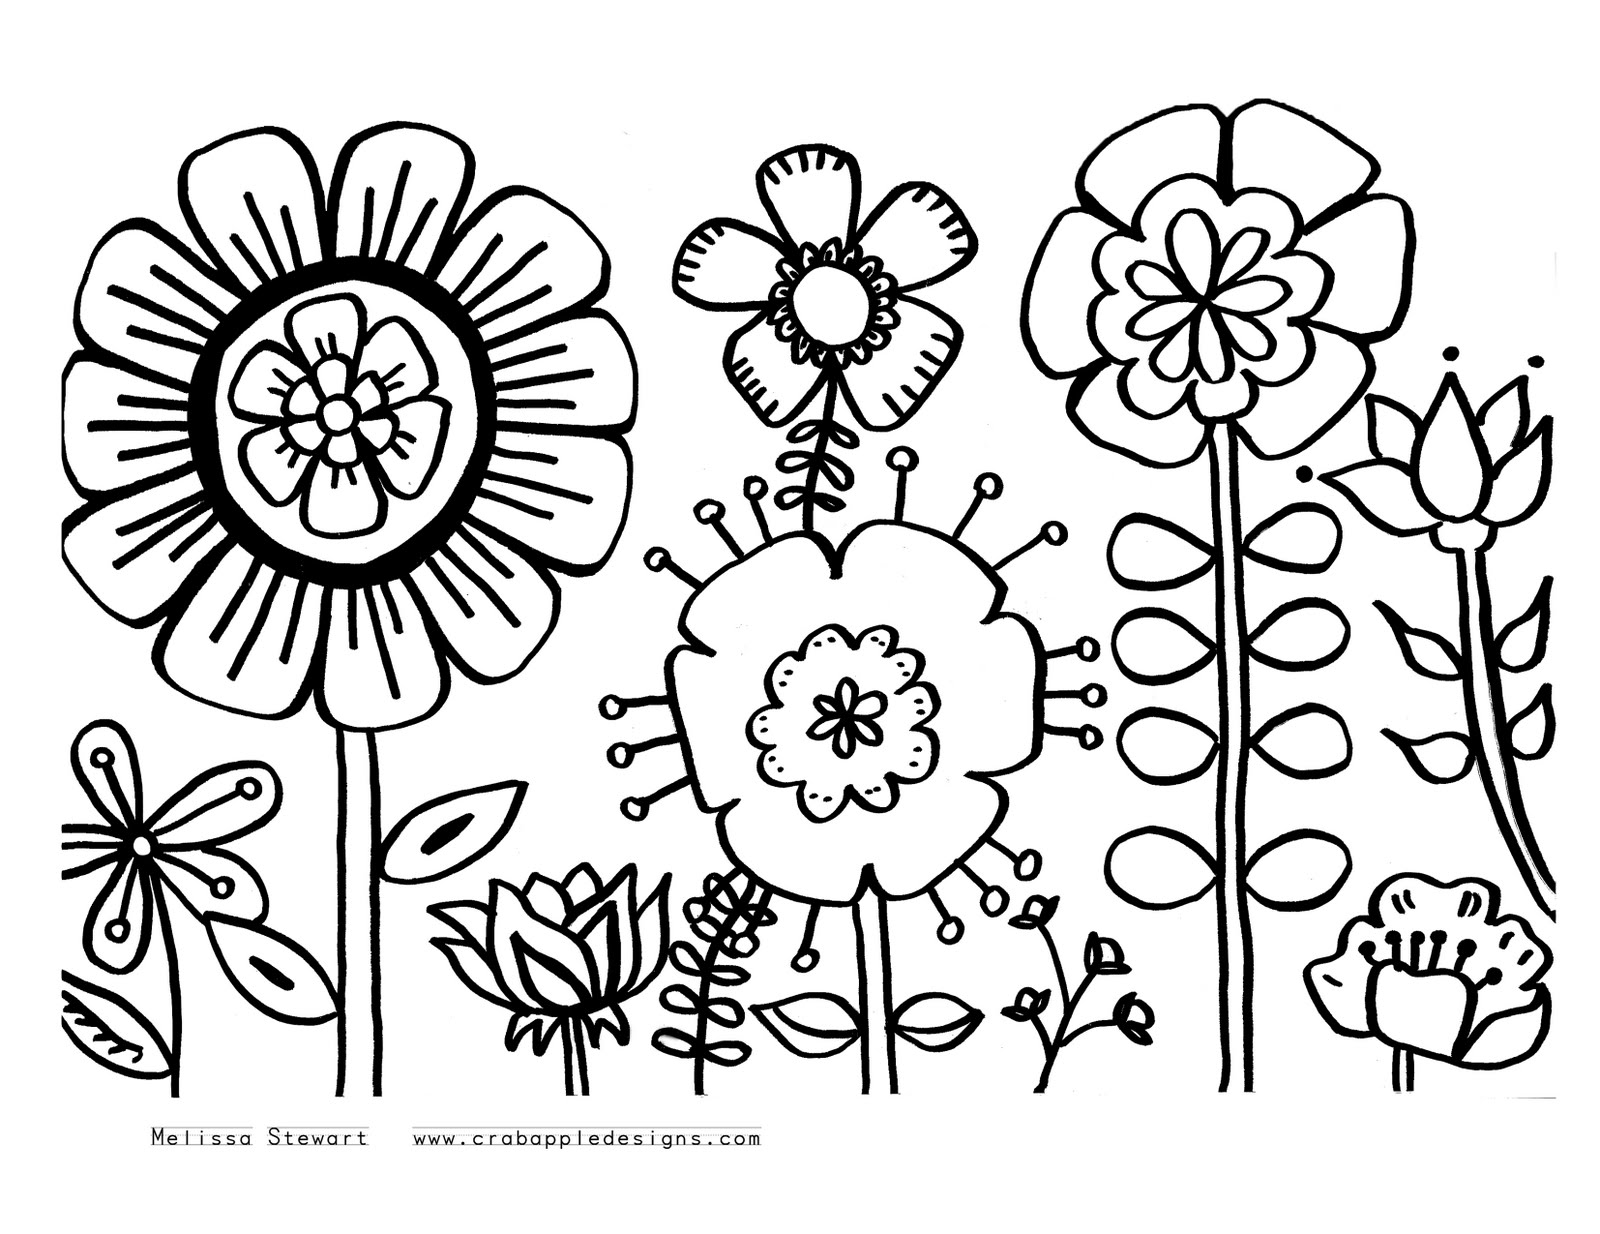 flower coloring page beautiful picture of flower coloring page color luna coloring flower page